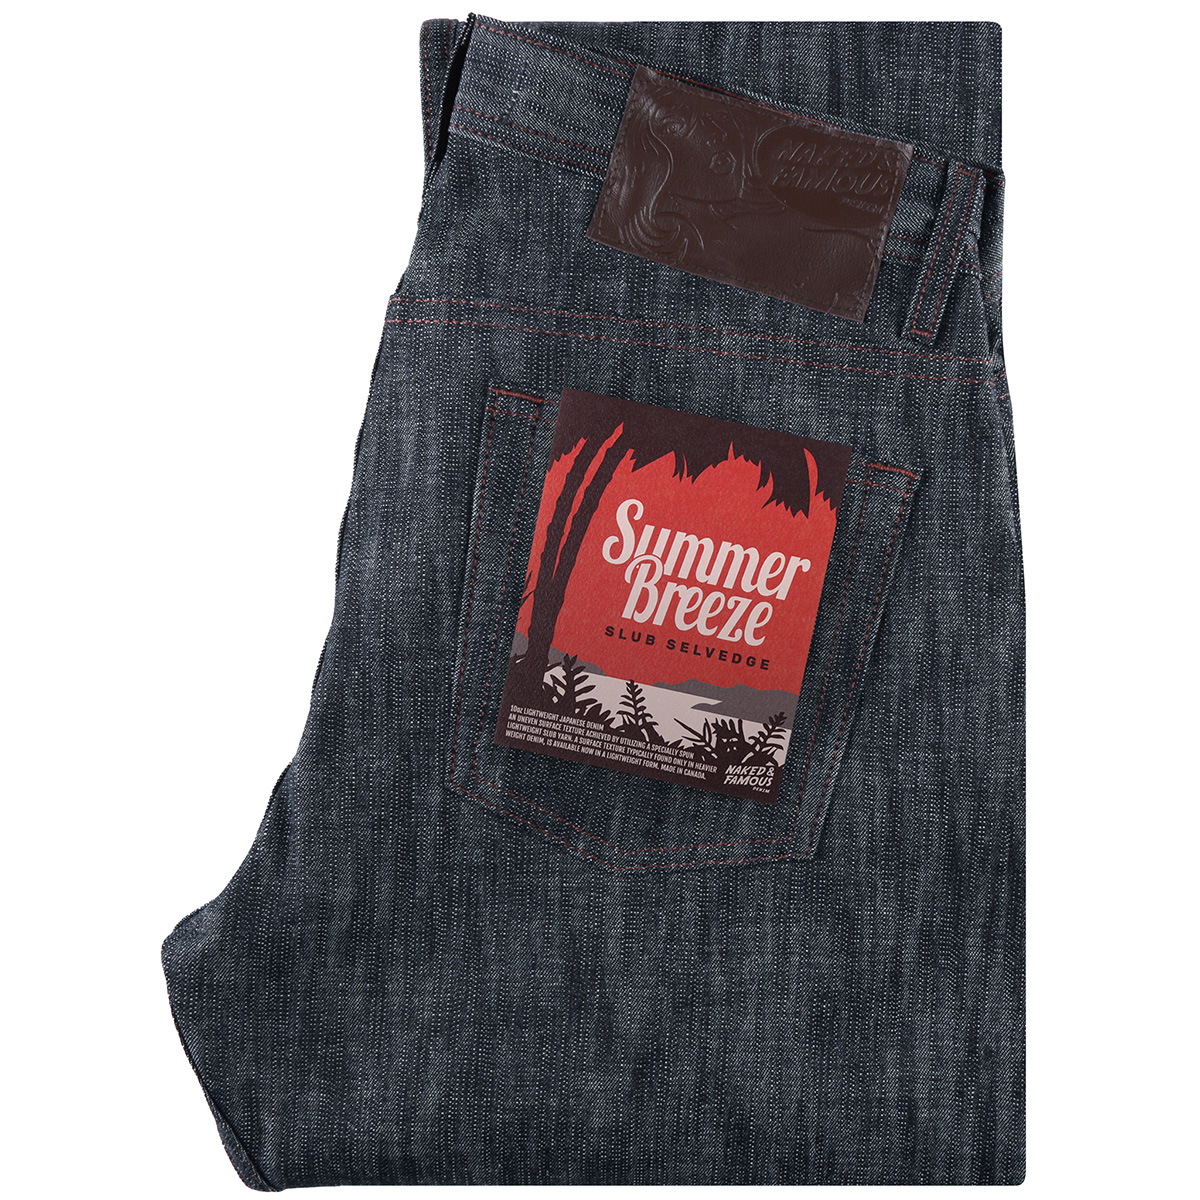 SUMMER BREEZE SLUB selvedge - Super Guy / Weird Guy / Easy Guy